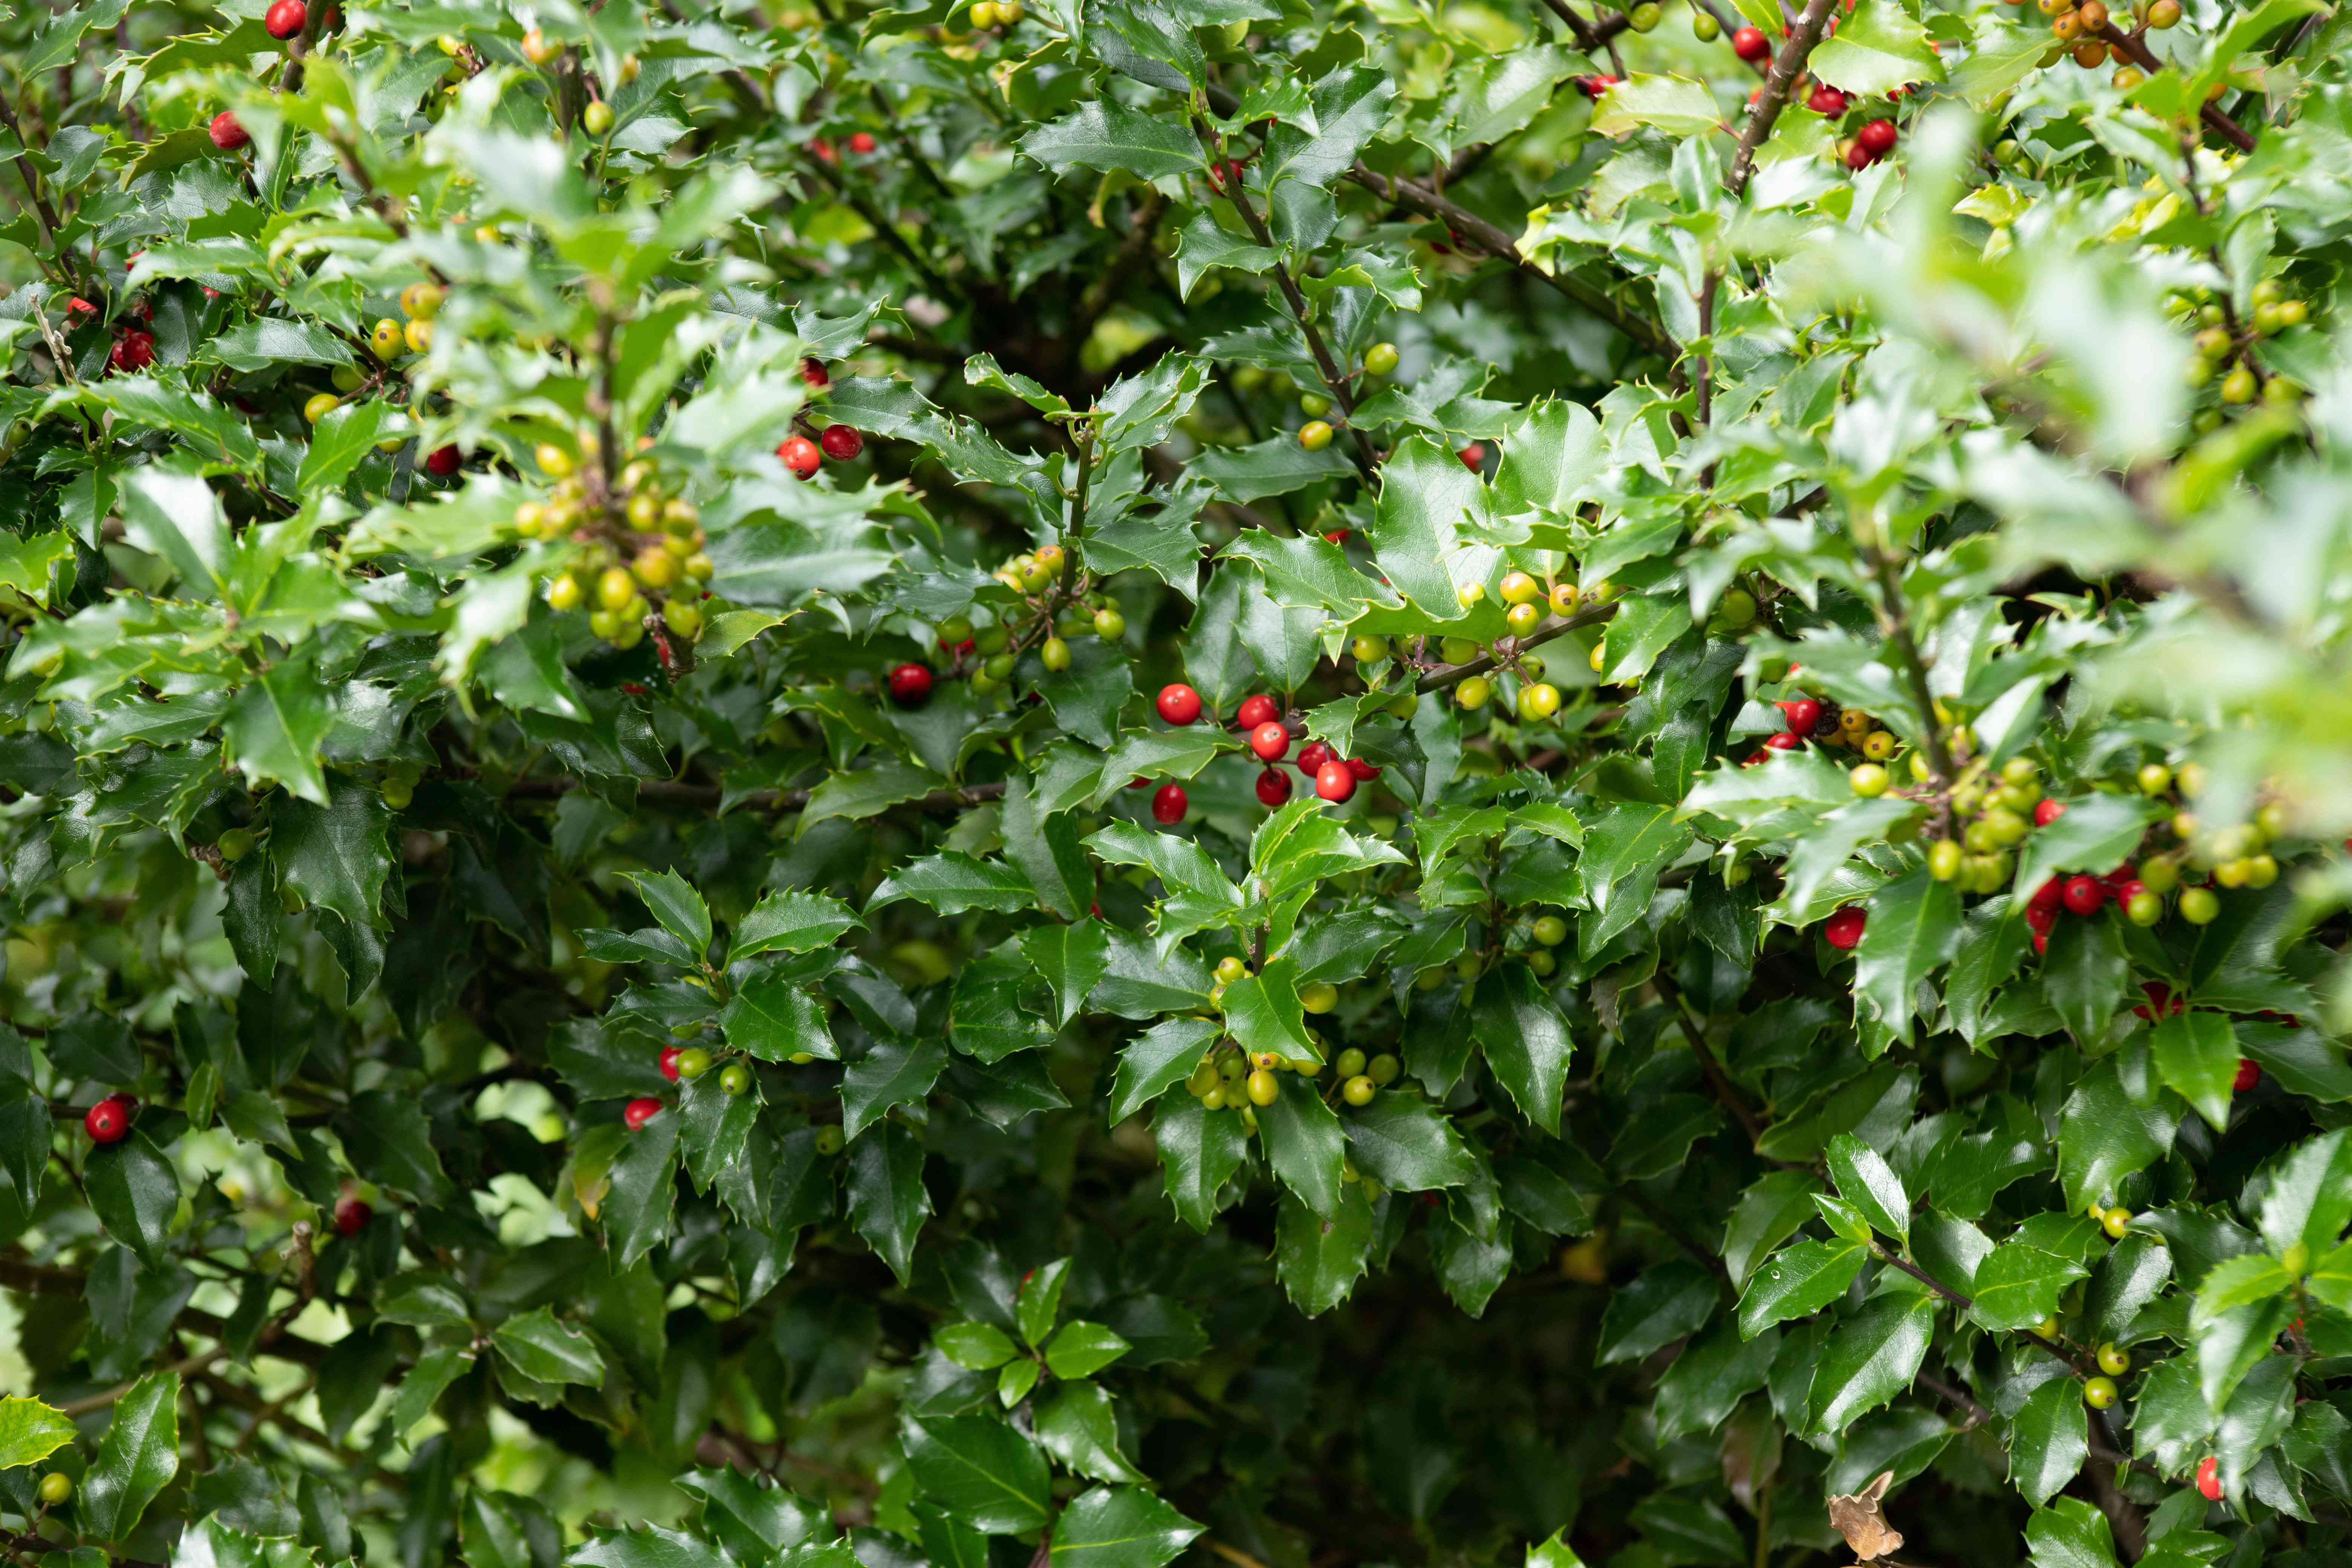 Holly shrub branches with barbed leaves and red and green